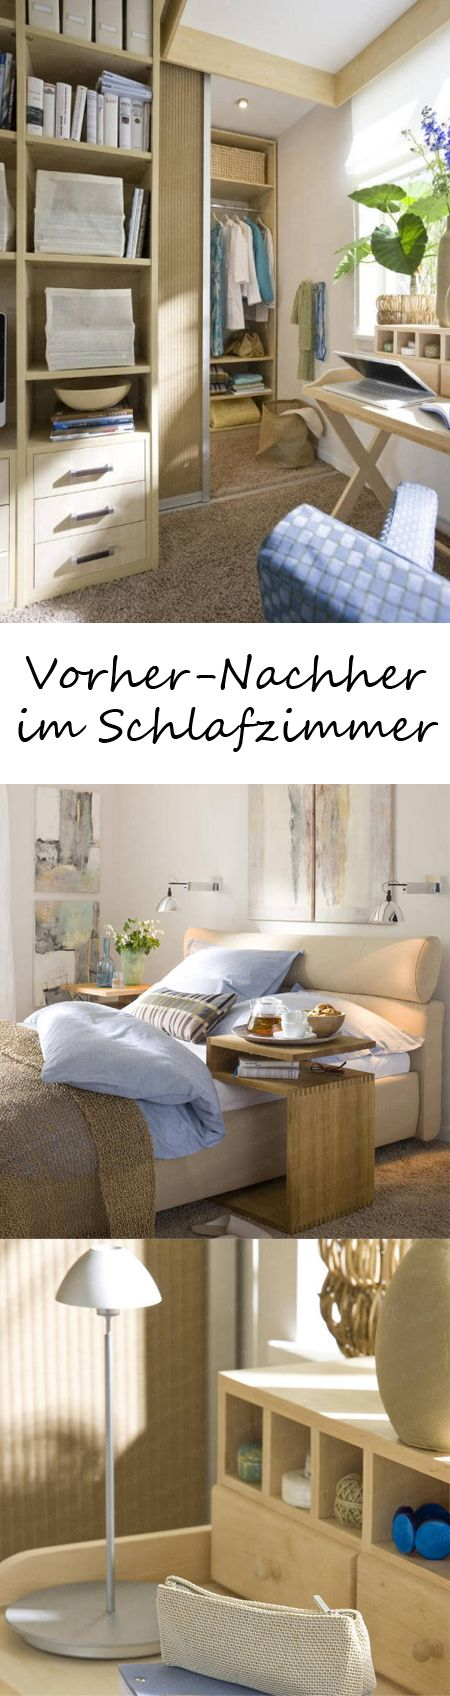 schlafzimmer bei tag und nacht ruhe finden tags and art. Black Bedroom Furniture Sets. Home Design Ideas